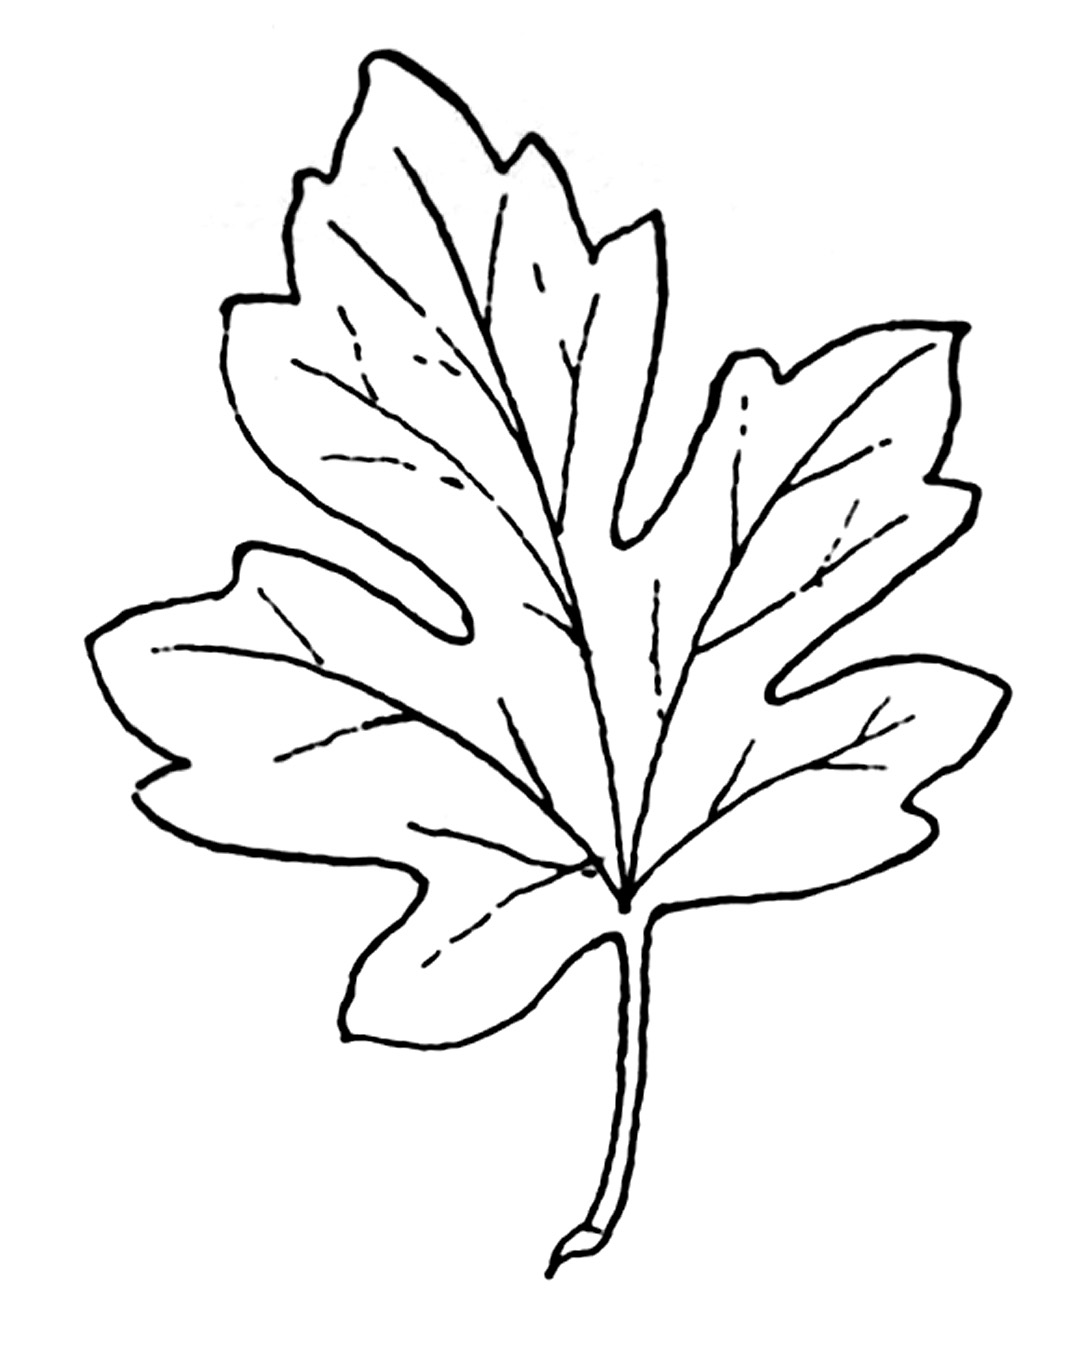 Fall Leaf Clip Art Black And White Your -Fall Leaf Clip Art Black And White Your Getting Your First Image-1